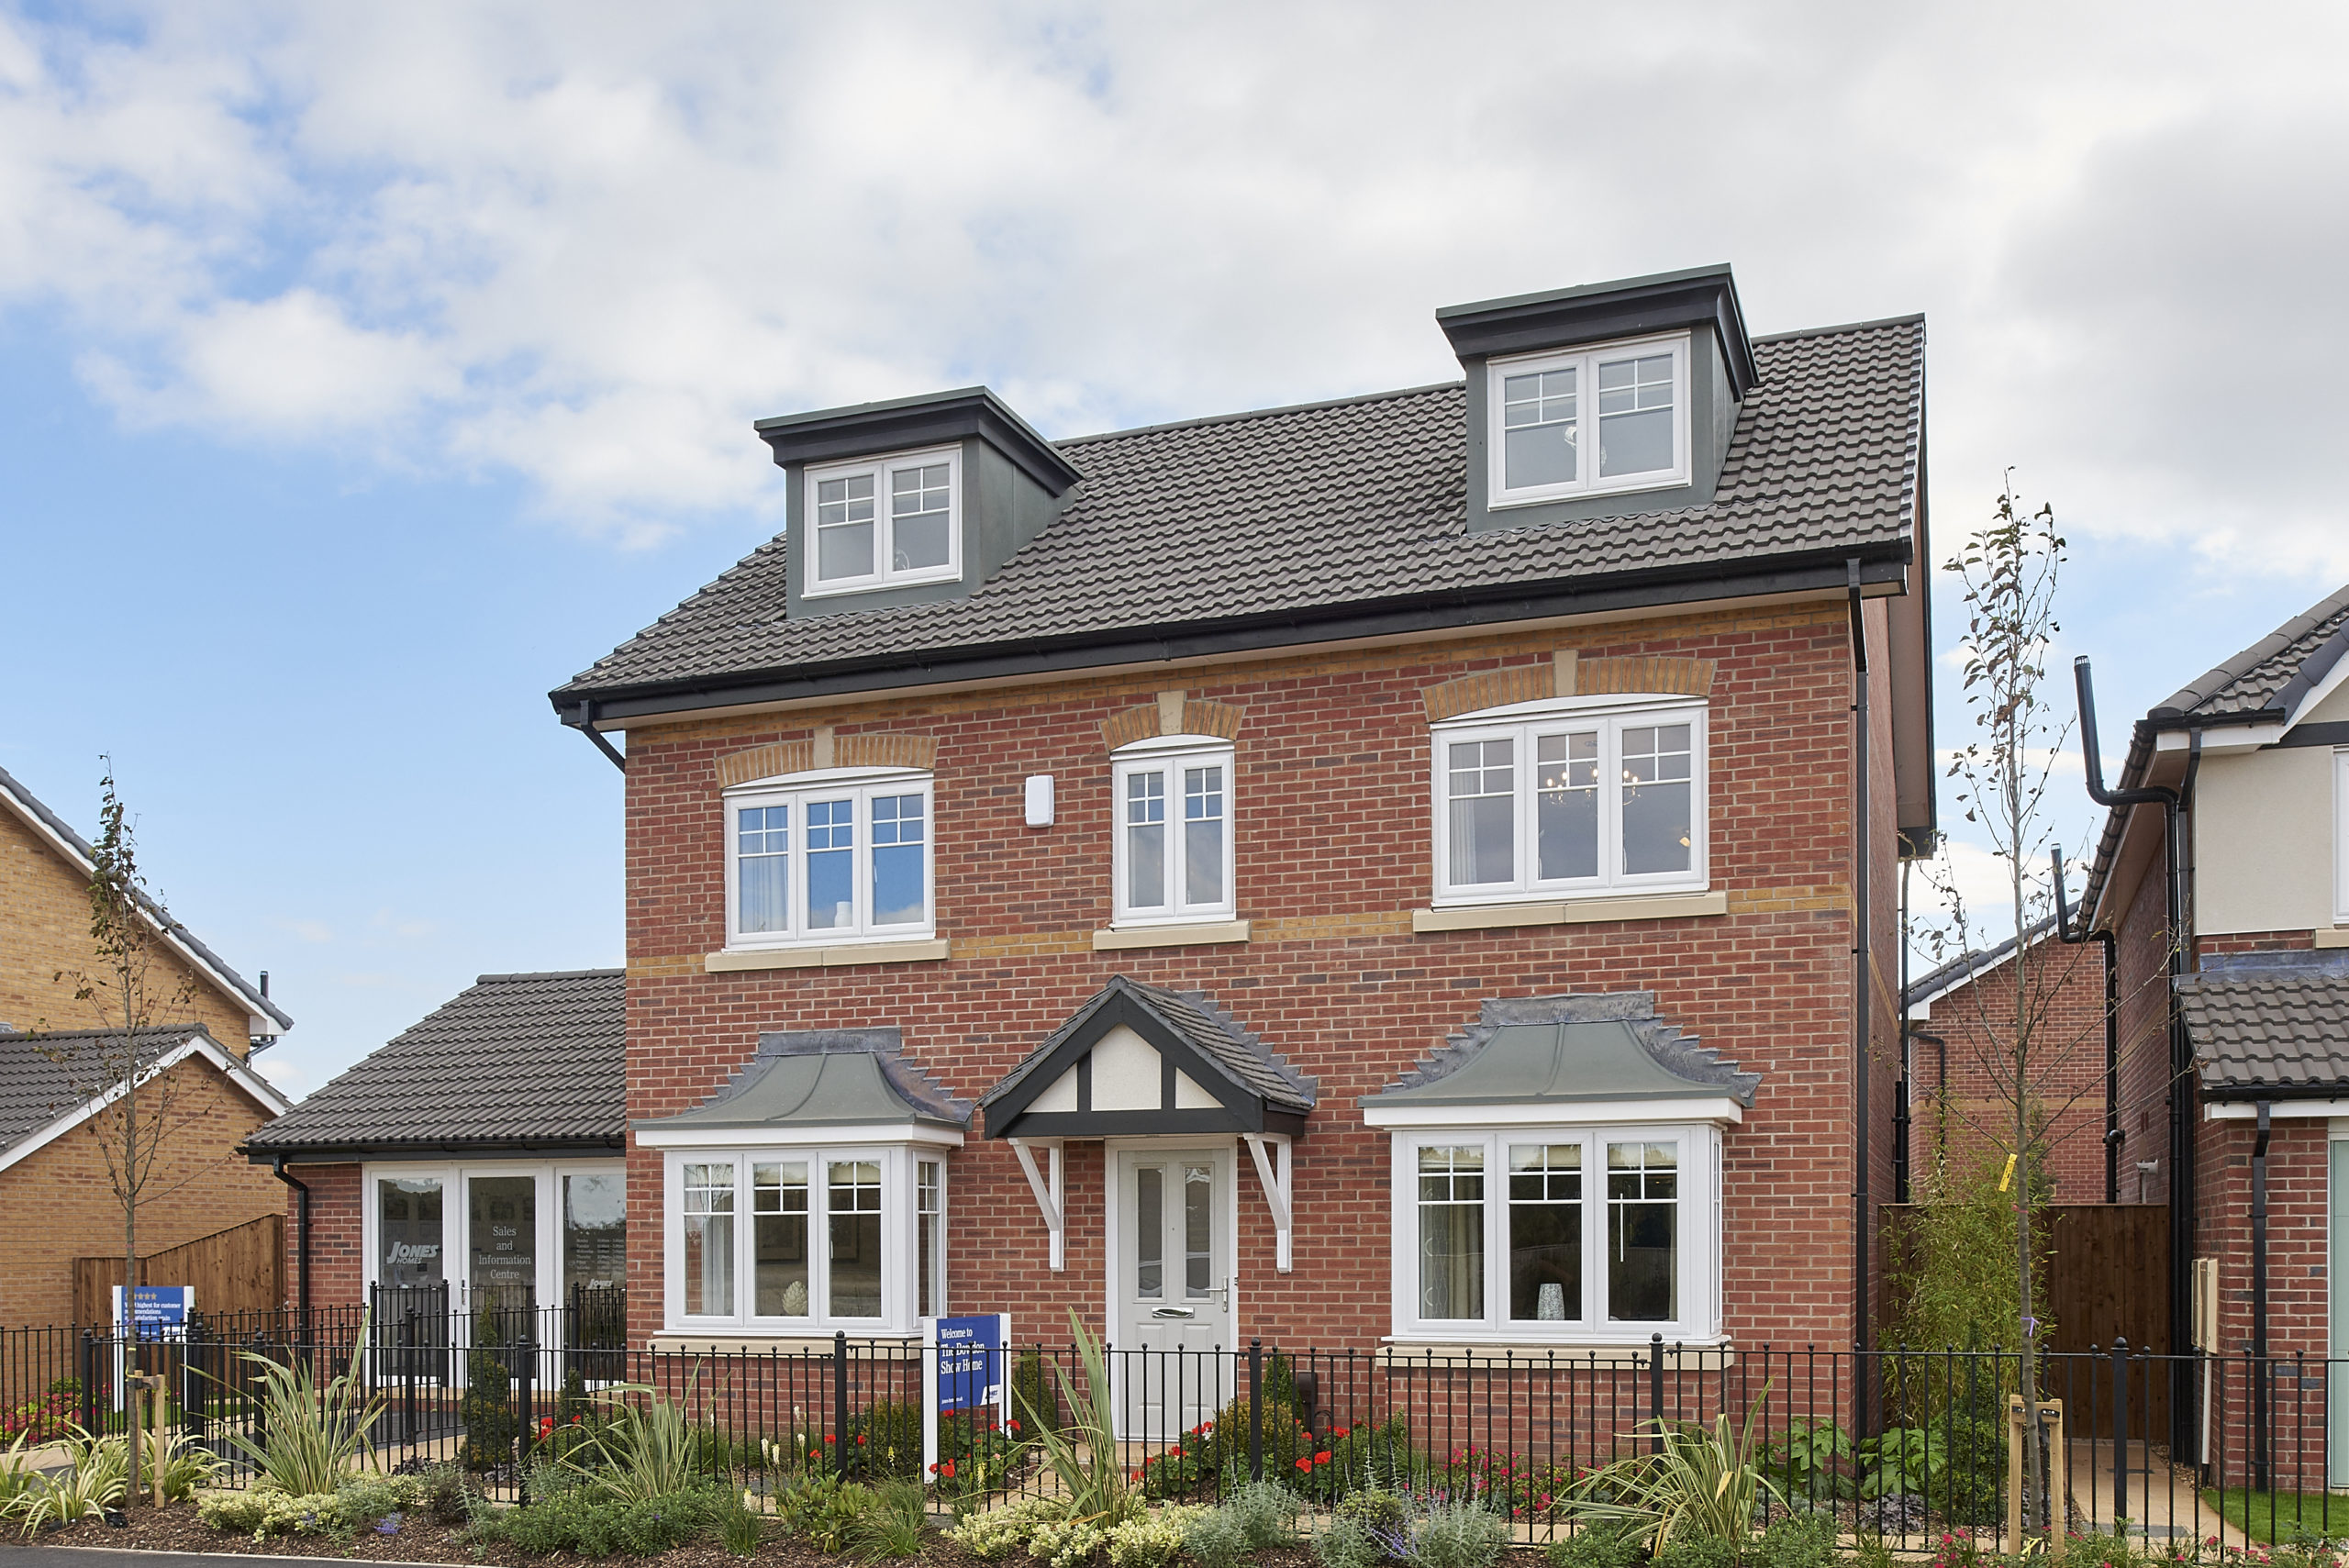 Flexible three-storey living for growing families at Worksop development